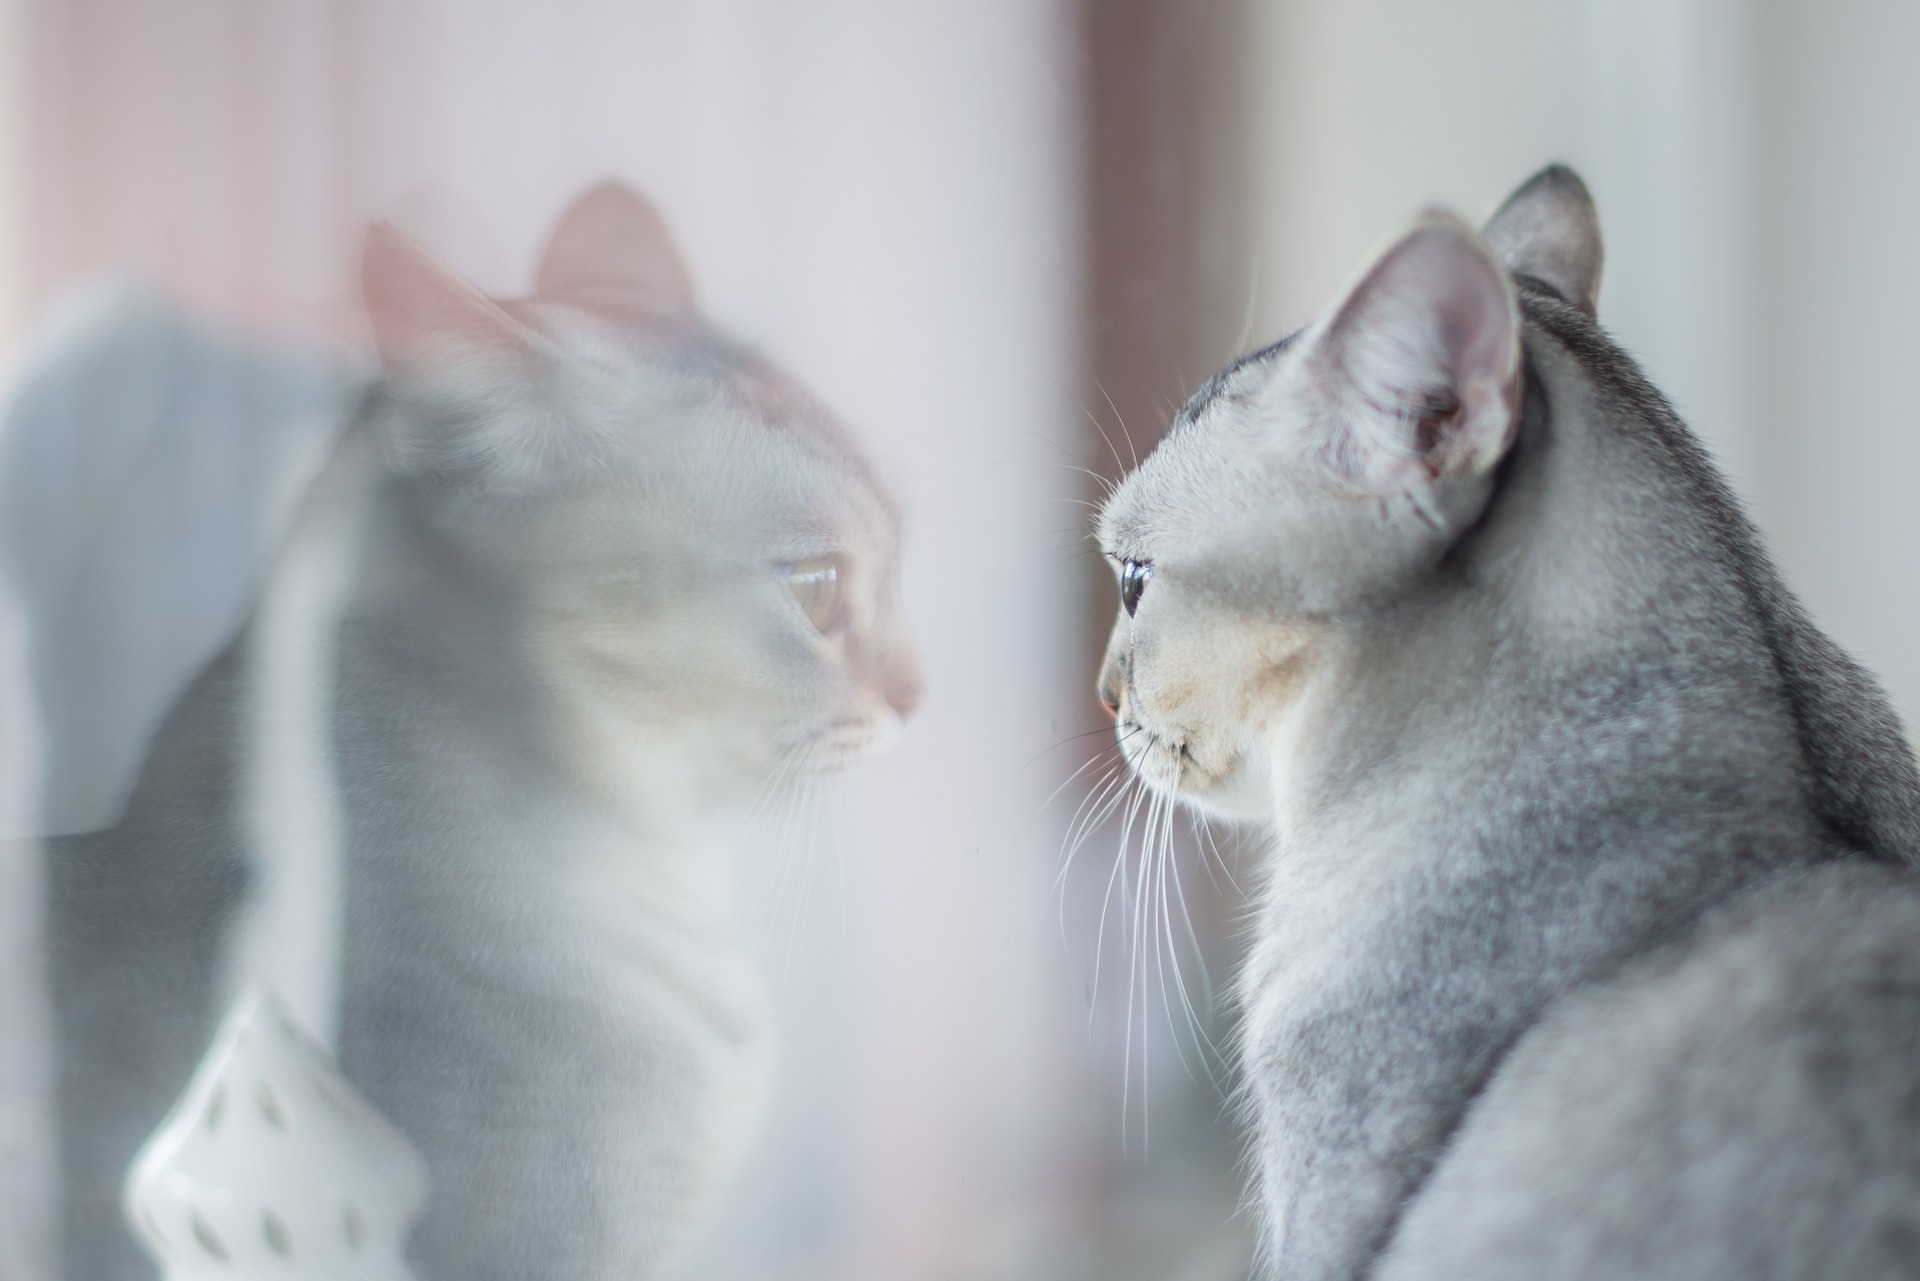 Photo of grey cat looking at its own reflection in a window.